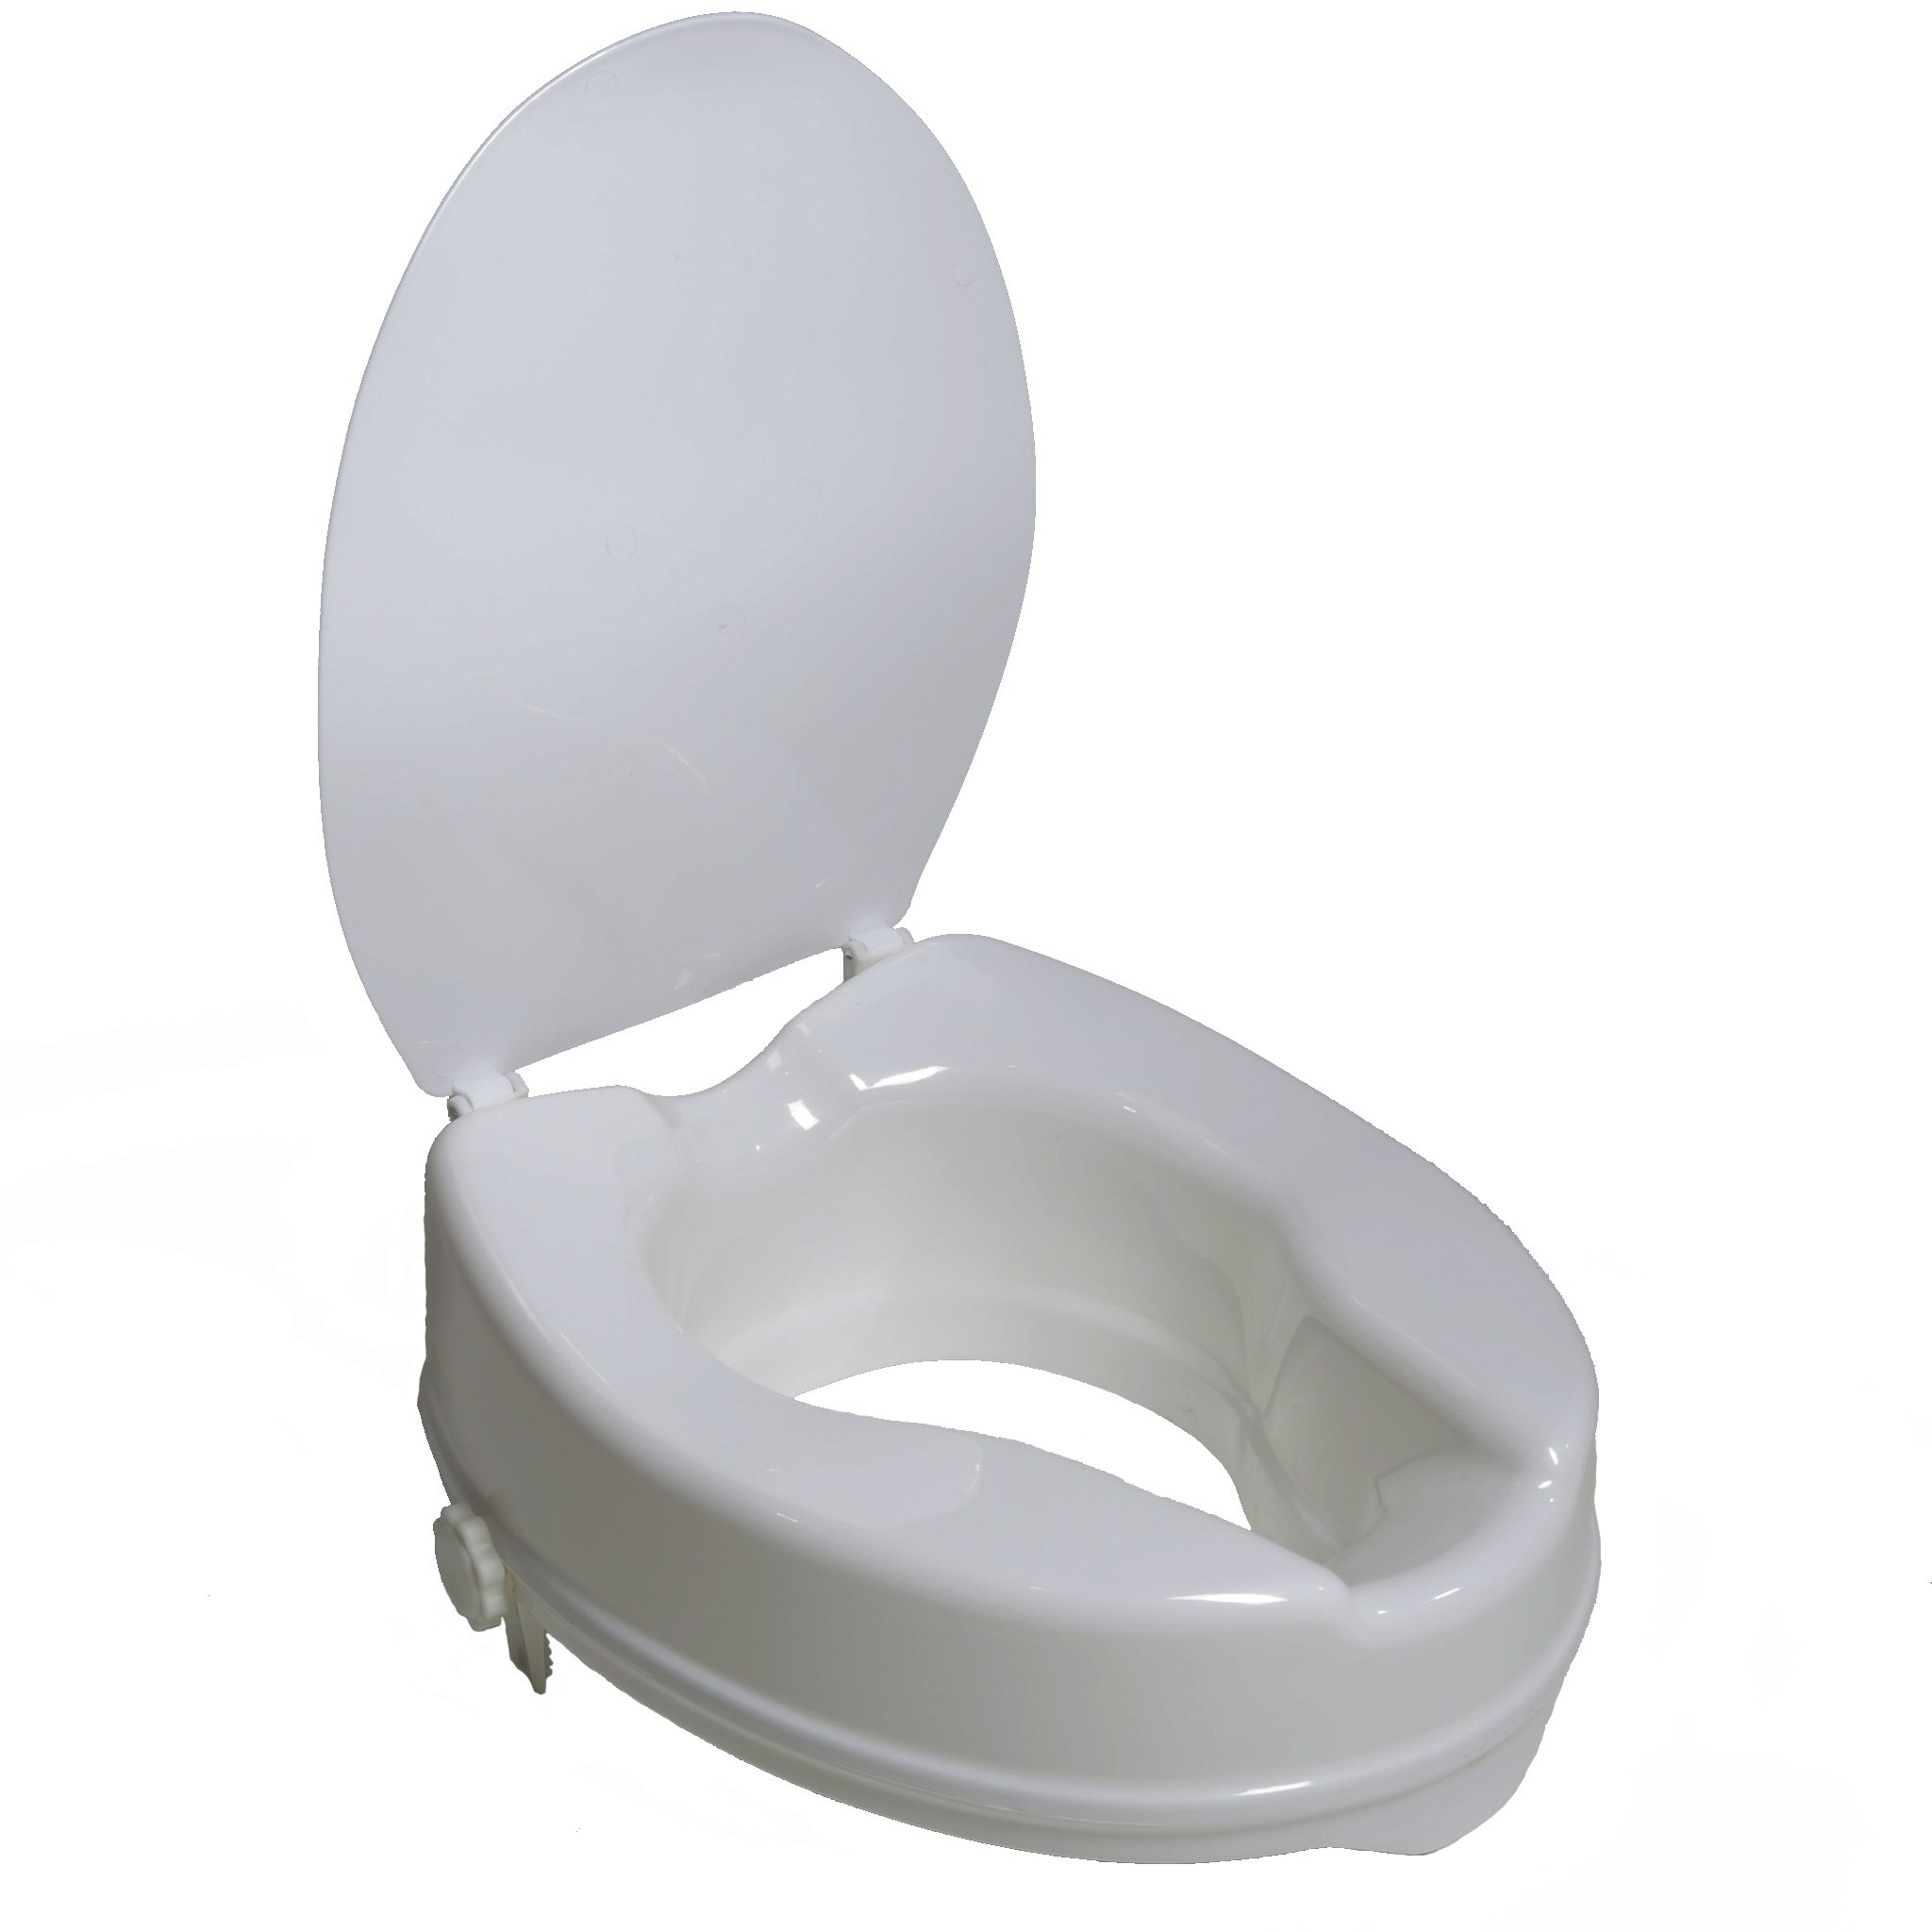 PCP 4'' Raised Standard Toilet Seat, Increase Height Over Commode, Includes Lid, Tightening Stability Safety Clamps by PCP